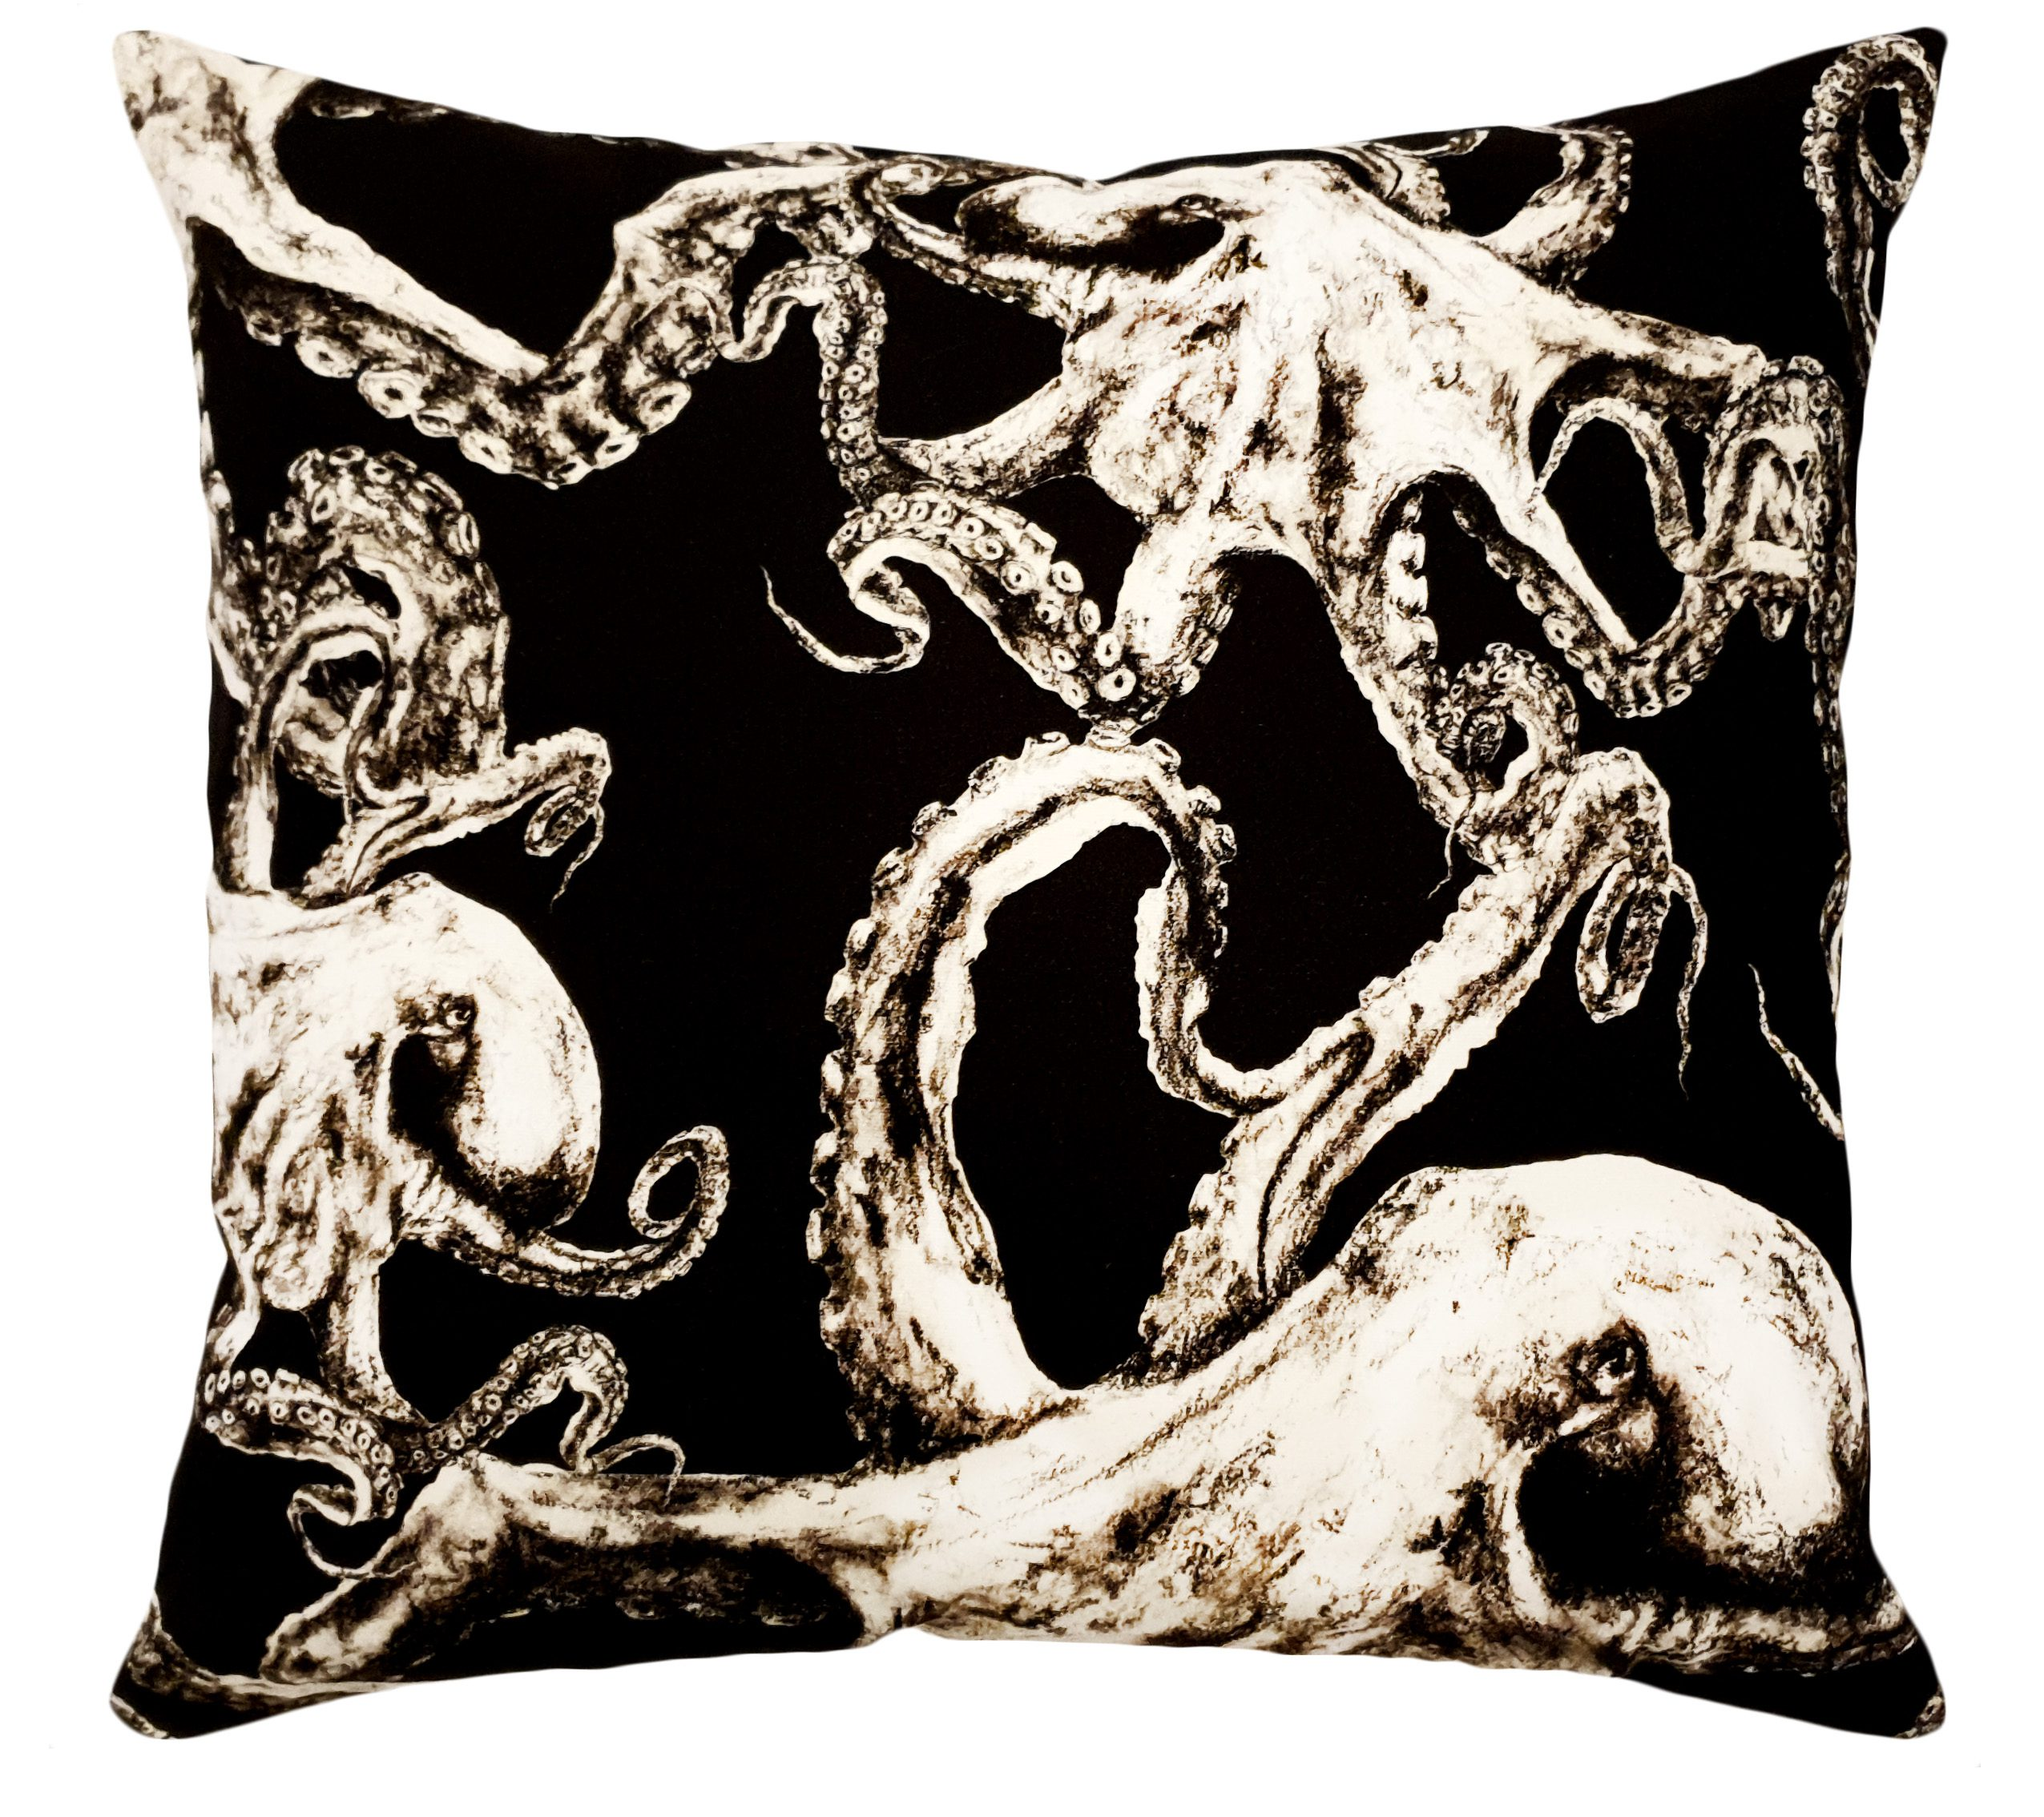 Cephalopod Scatter Cushion | IV Fashion Design